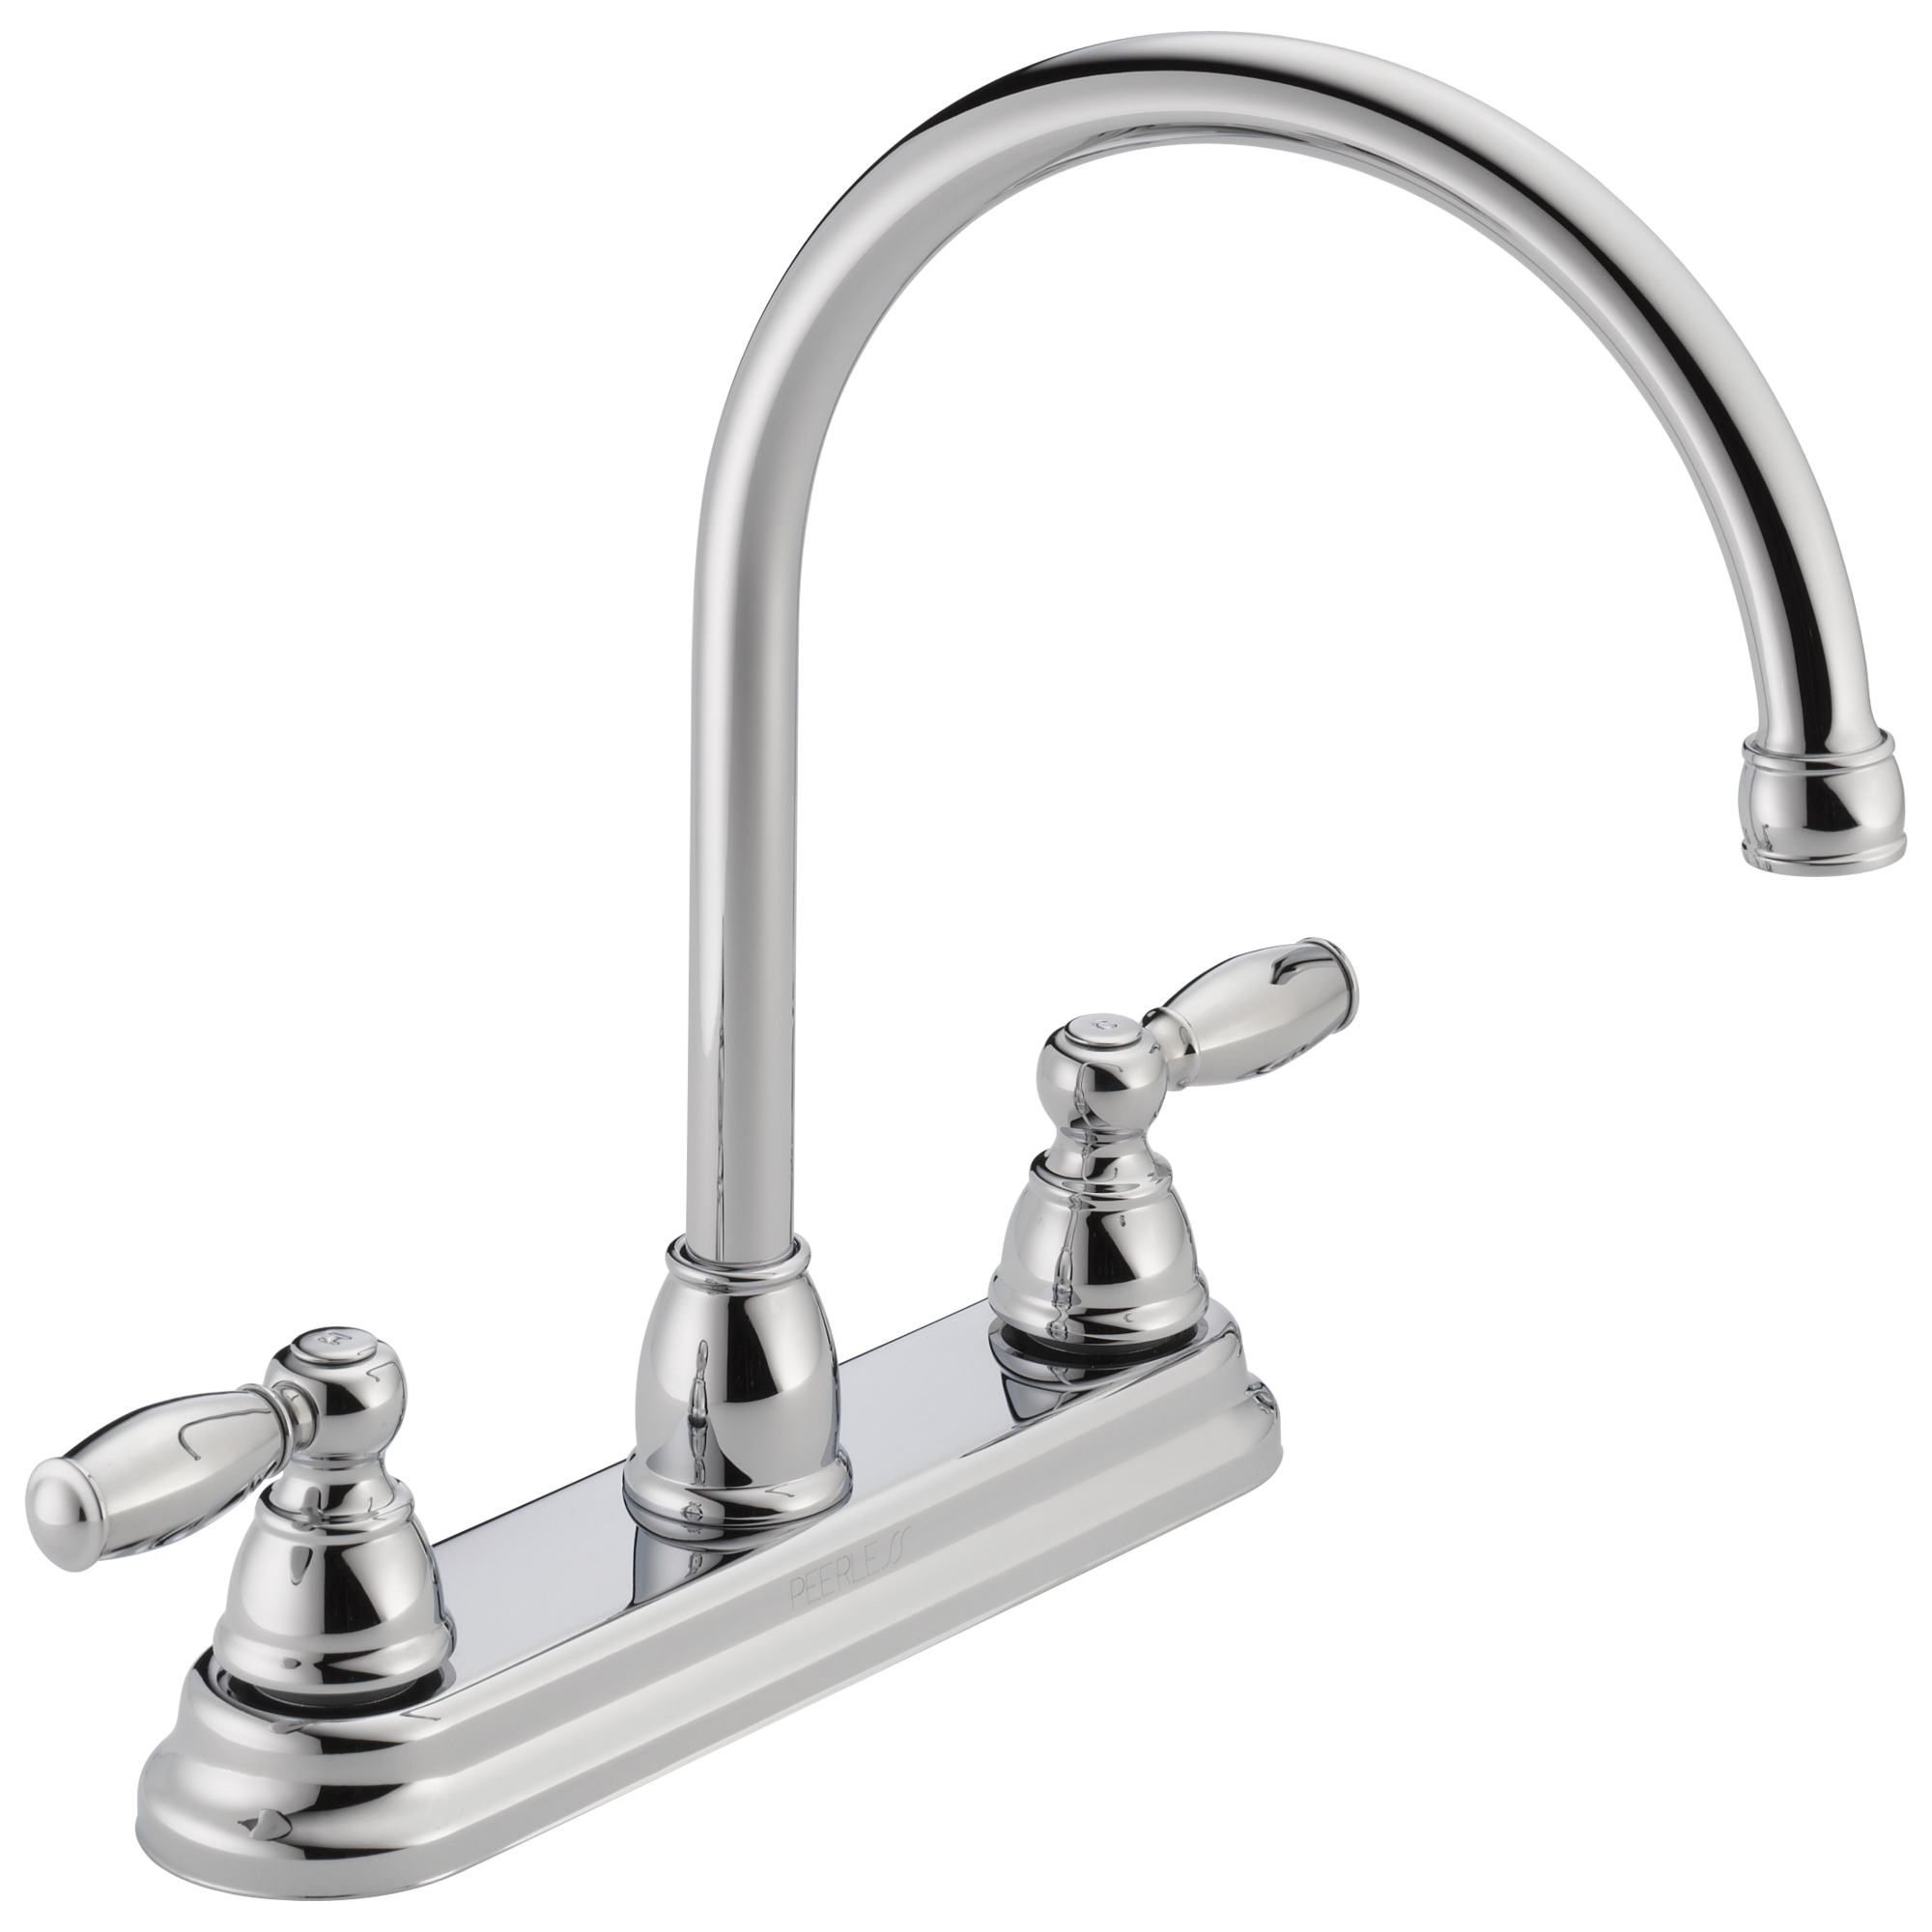 Peerless® P299565LF Kitchen Faucet, 1.8 gpm, 8 in Center, Swivel Spout, Chrome Plated, 2 Handles, Side Spray(Y/N): No, Import, Commercial